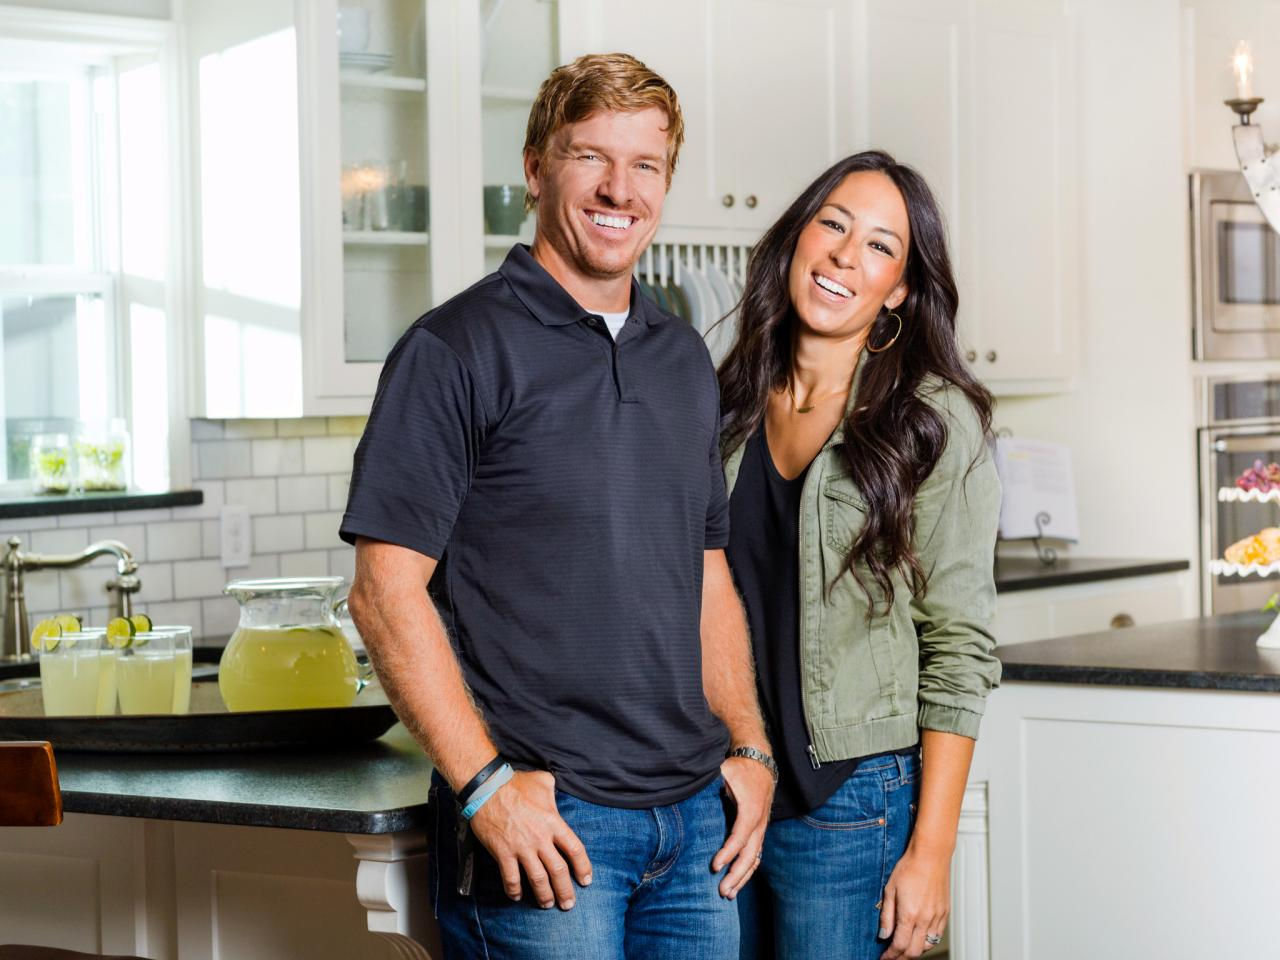 You Could Be On Fixer Upper If You Follow These Three Rules